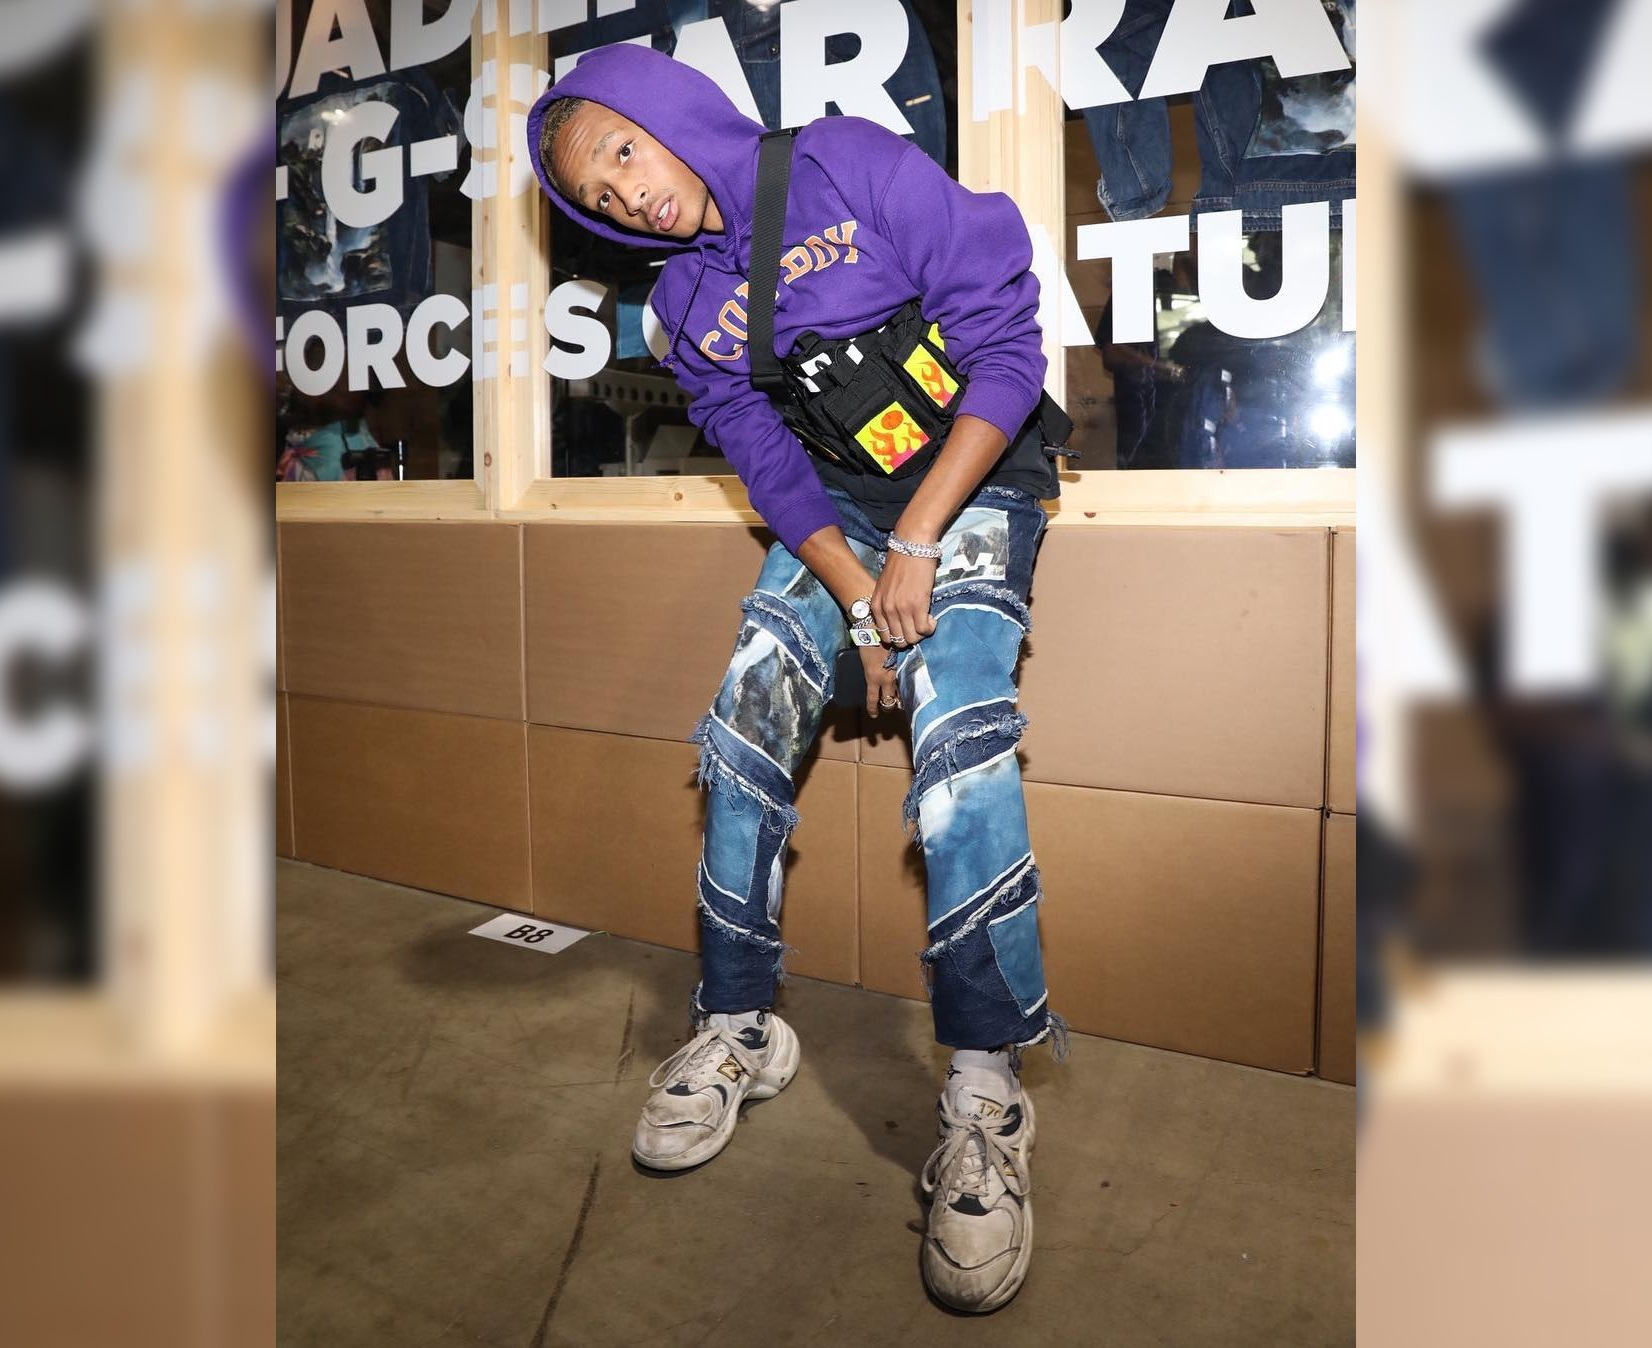 SPOTTED: Jaden Smith Adorned in G-Star RAW and Custom Louis Vuitton Sneakers